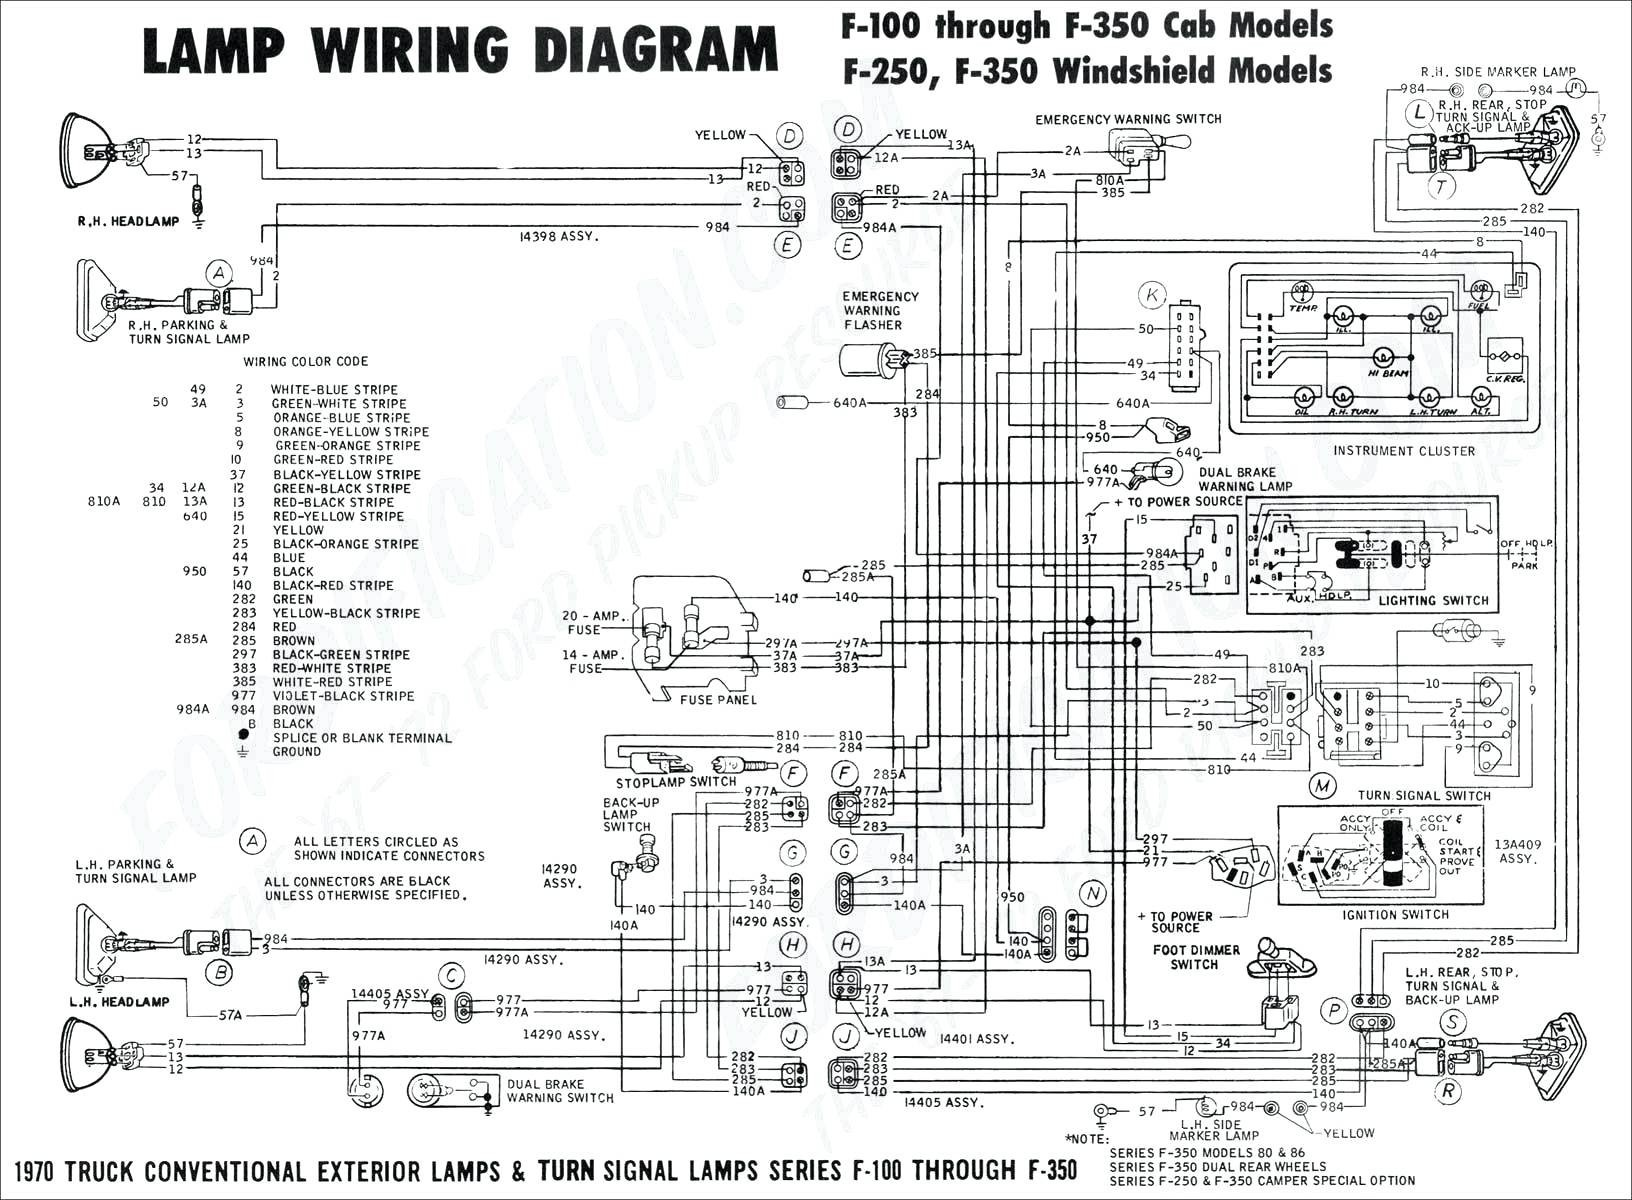 1989 ford 7.3 Idi Diesel Glow Plug Controller Diagram Kr 7628] ford 7 3 Glow Plug Relay Wiring Diagram Moreover 7 Of 1989 ford 7.3 Idi Diesel Glow Plug Controller Diagram